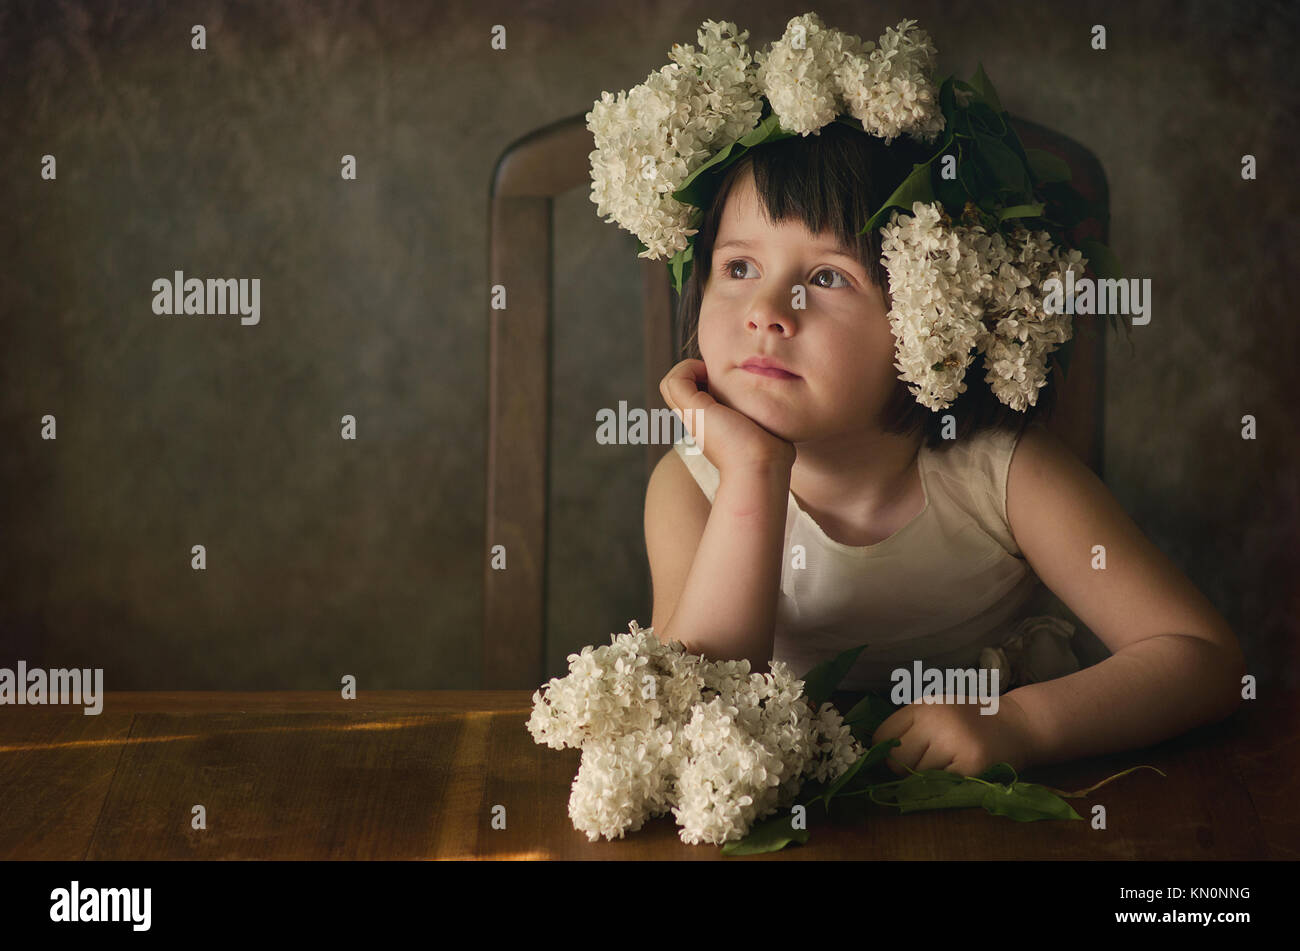 Studio portrait of beautiful girl 2-4 years with lilac flower garland on her head. Dreamy mood, creative look. - Stock Image